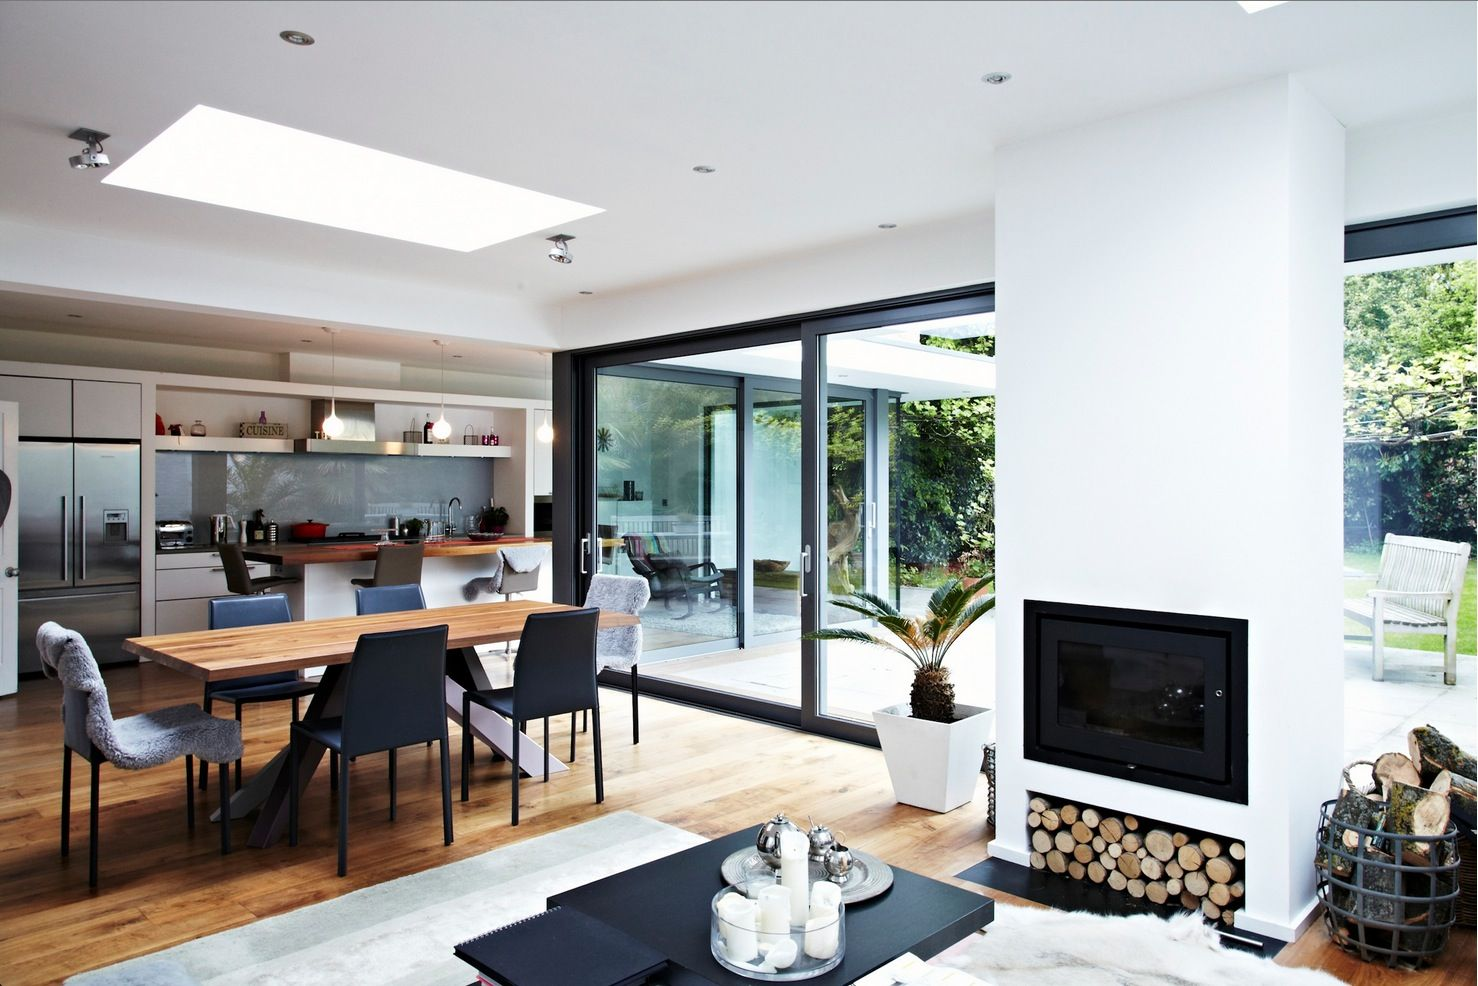 Living Room Extensions Interior Best This Home Located In The Kingston Region Of London Is The Perfect . Design Ideas